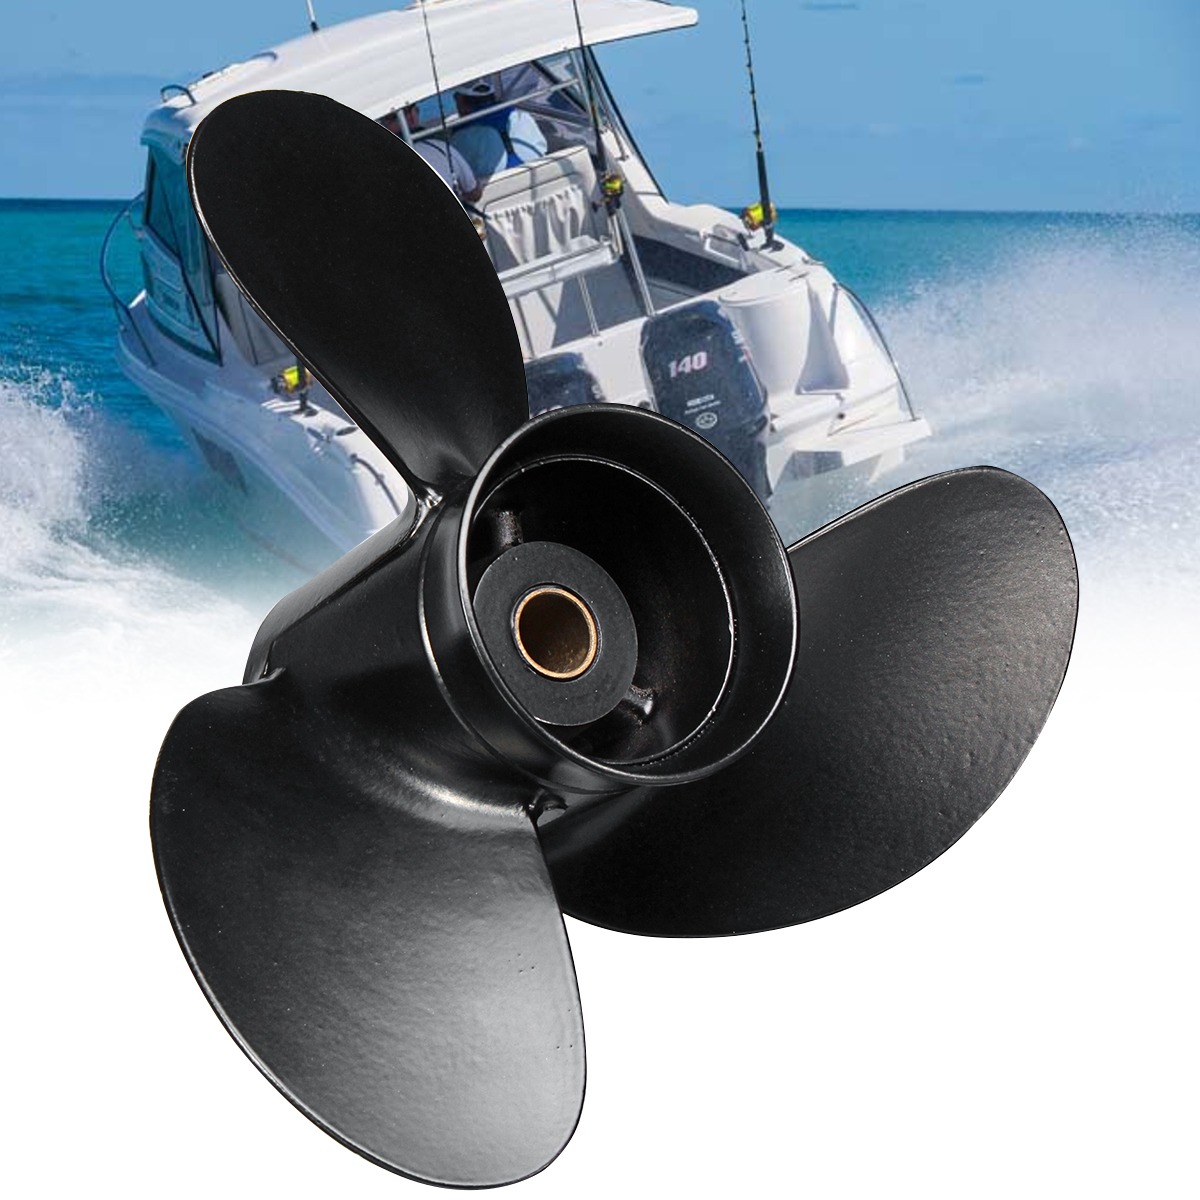 3B2W64517 1 for Tohatsu Nissan Mercury 8 9.8HP 8.5X9 Boat Outboard Propeller Aluminum Alloy 12 Spline Tooths 3 Blades Black